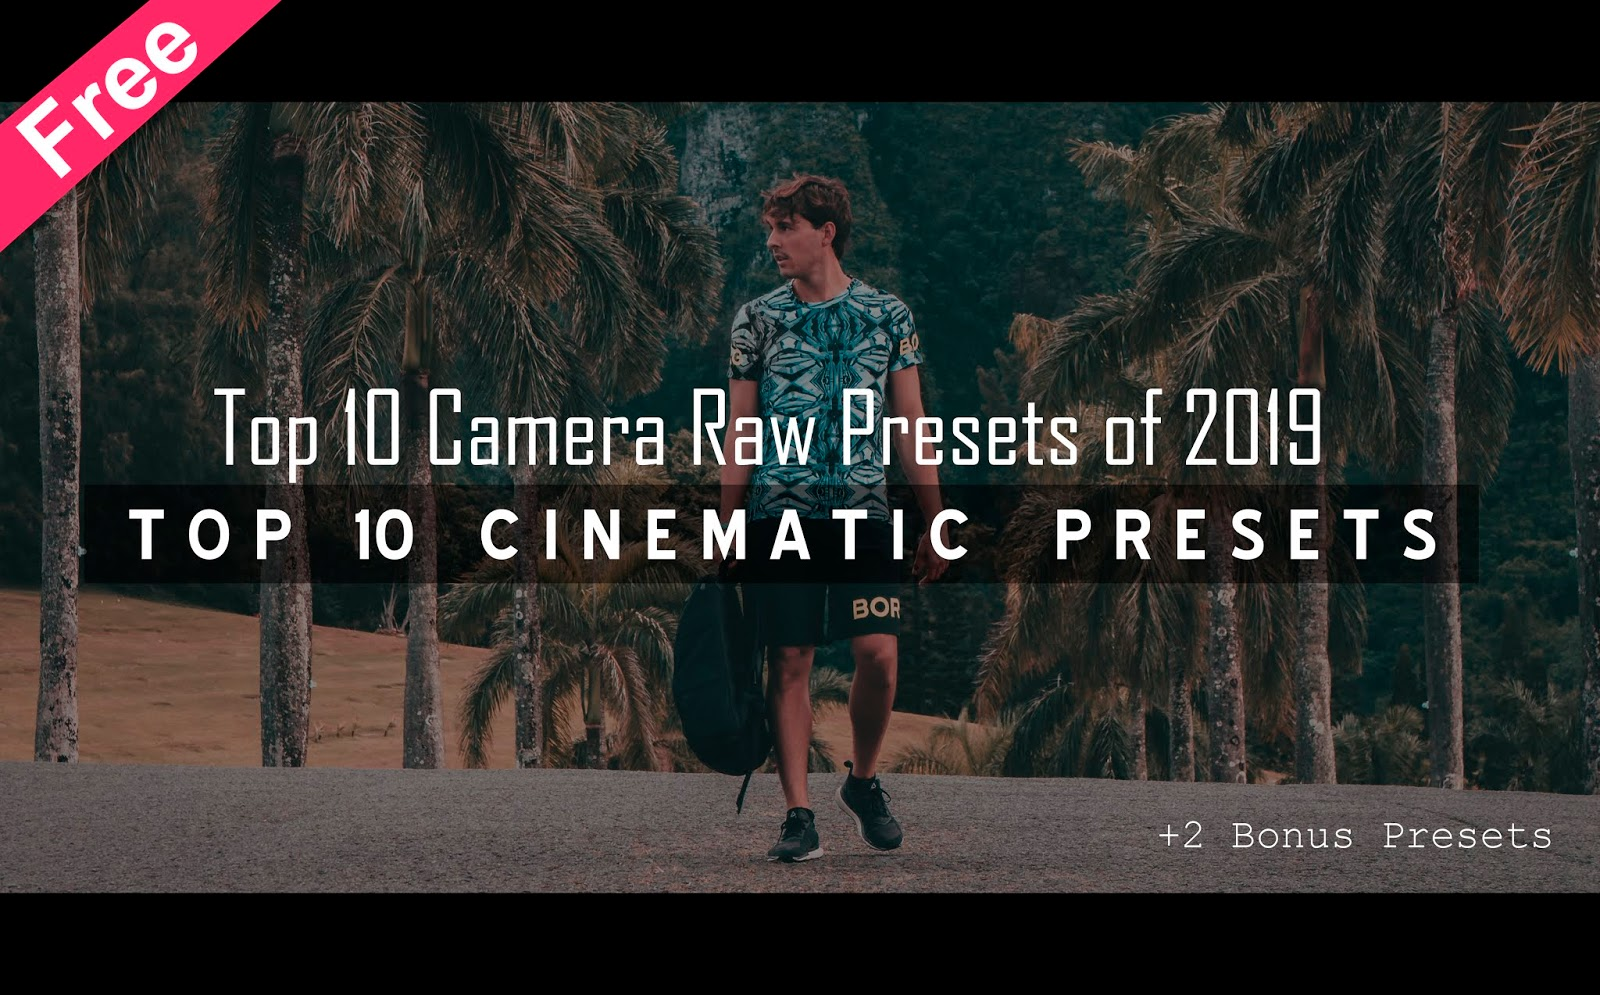 Download Top 10 Cinematic Camera Raw Presets of 2020 for Free | Cinematic Camera Raw Preset Free Download